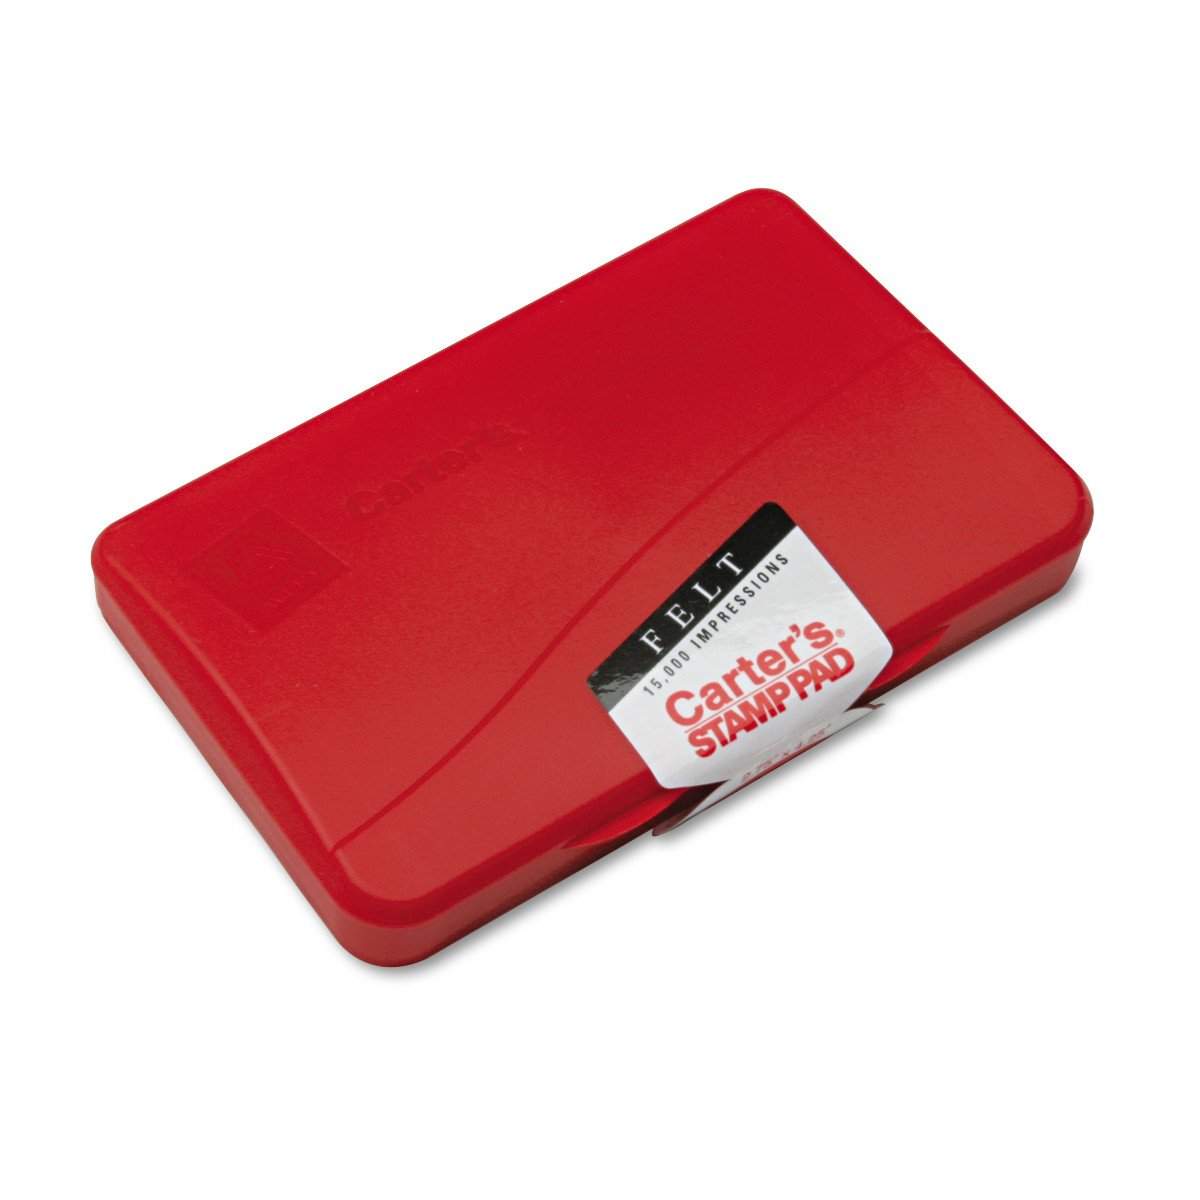 Avery Carter's Felt Stamp Pad, Red, 2.75 inch x 4.25 inch (21071) Avery Products Corporation